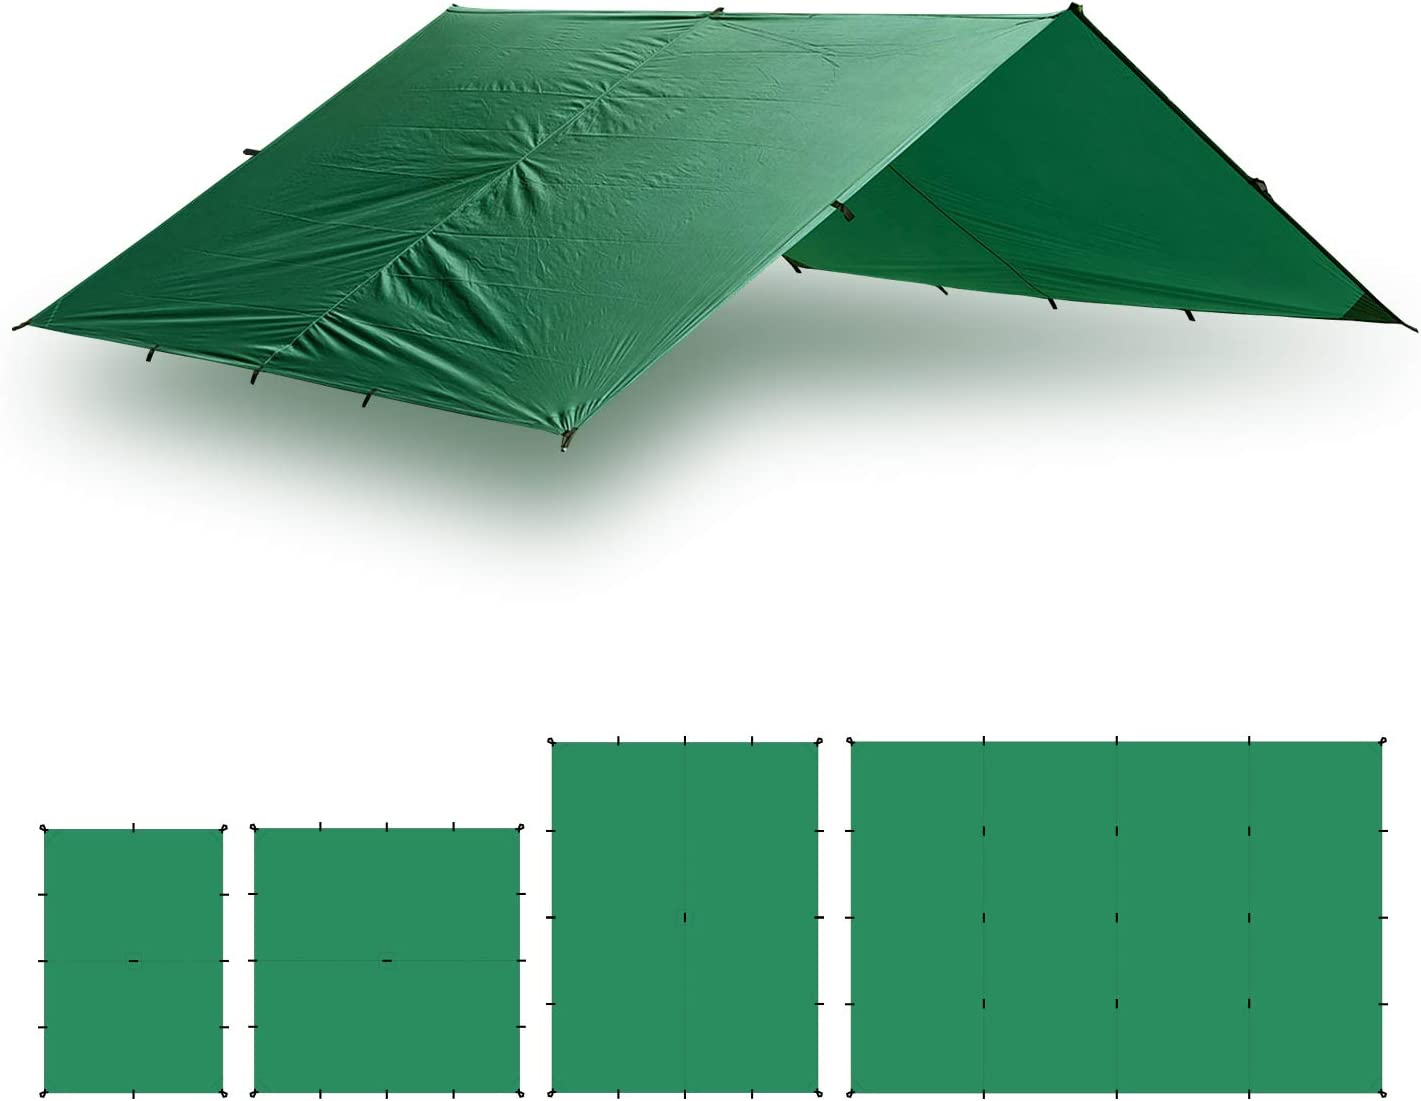 Aqua Quest Guide Tarp - 100% Waterproof Ultralight Ripstop SilNylon Backpacking Rain Fly - 10x7, 10x10, 13x10, 20x13 Green or Olive Drab